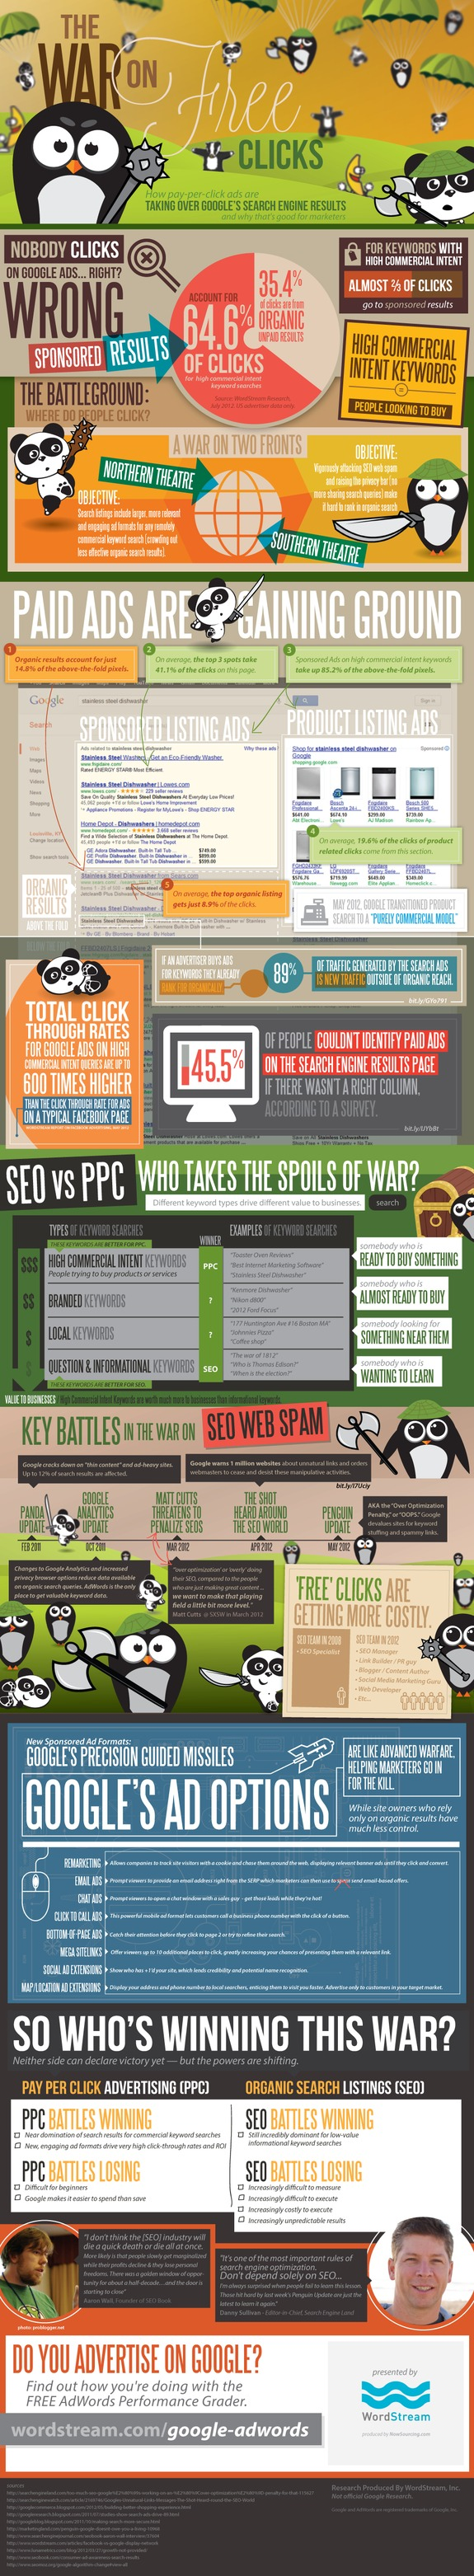 Google ads infographic